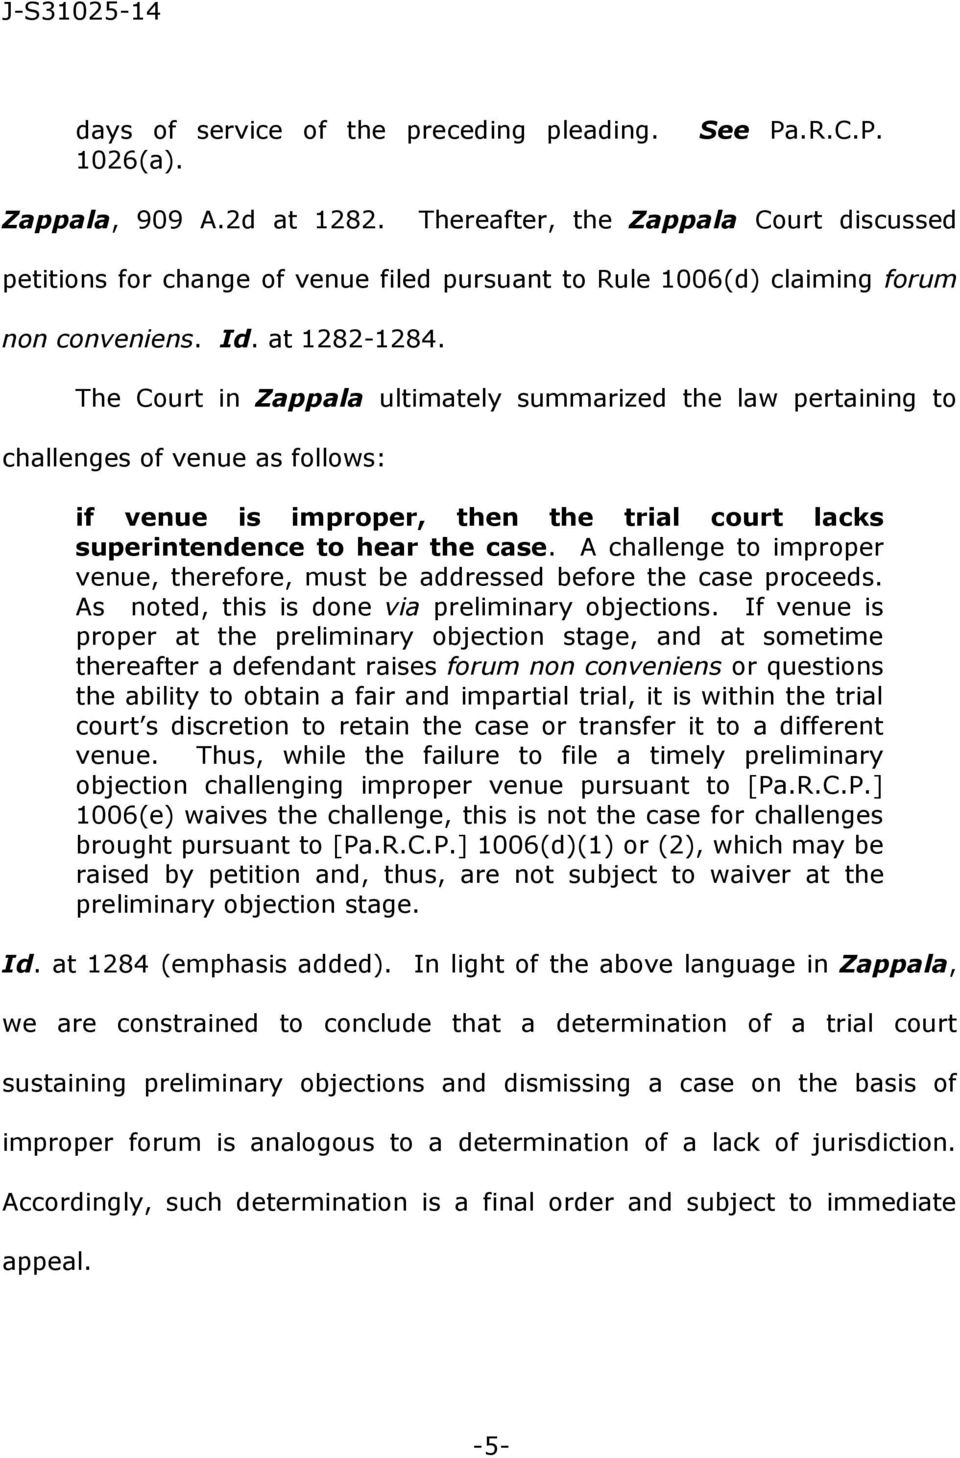 The Court in Zappala ultimately summarized the law pertaining to challenges of venue as follows if venue is improper, then the trial court lacks superintendence to hear the case.